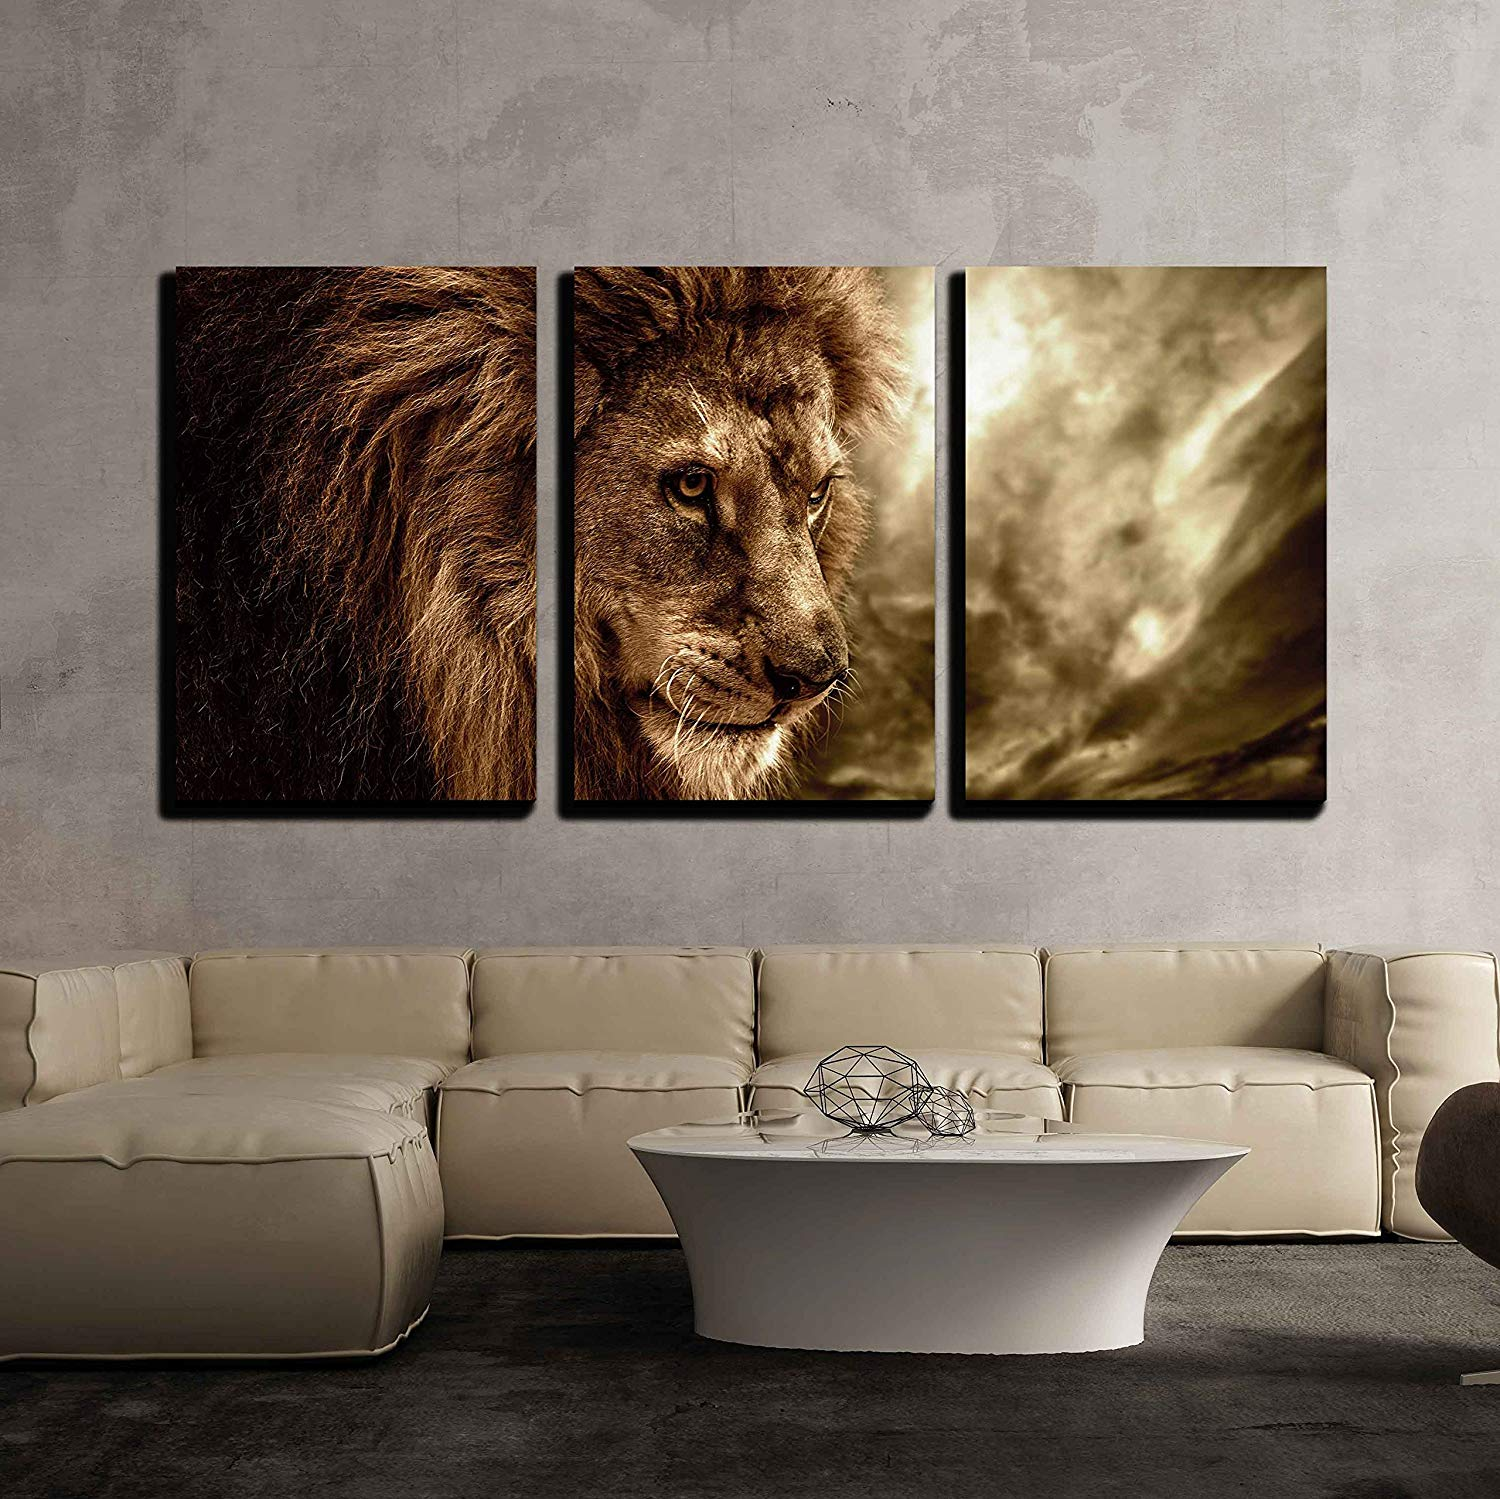 Wall26 3 Piece Canvas Wall Art Lion Against Stormy Sky Modern Home Art Stretched And Framed Ready To Hang Walmart Com Walmart Com